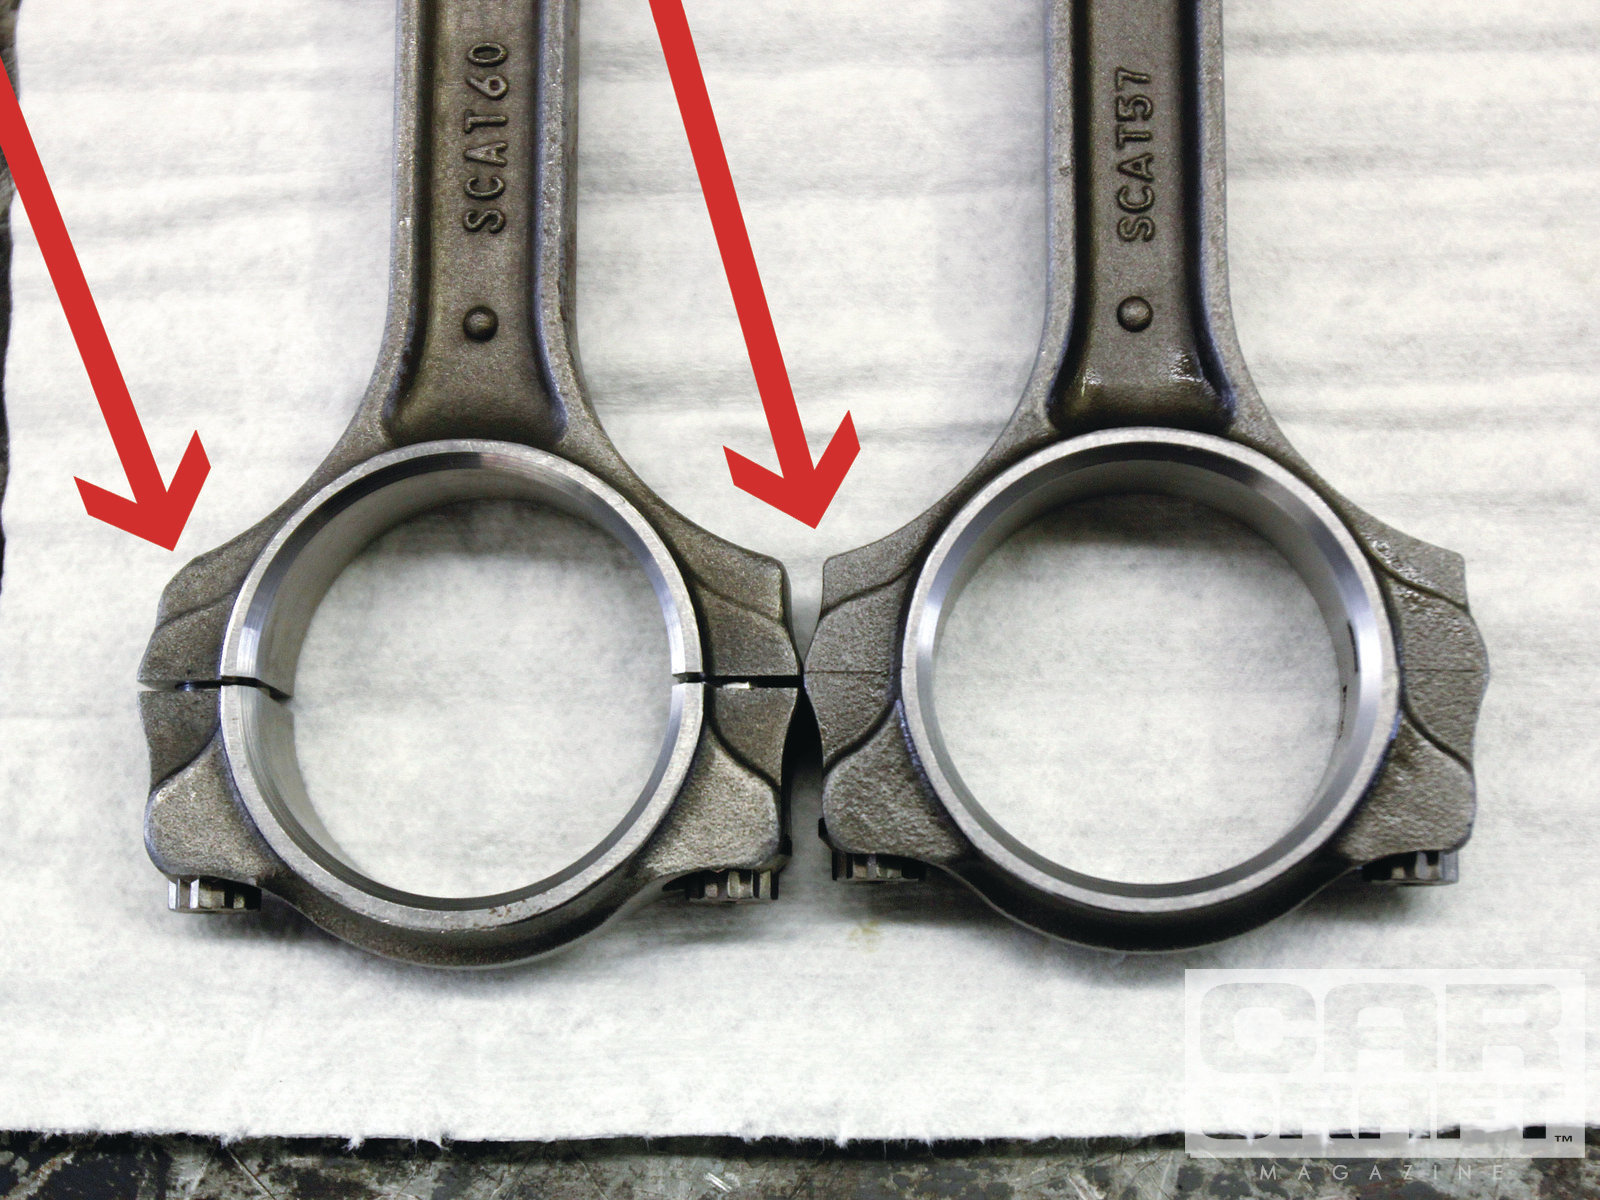 7. Our connecting rods did need to be ground slightly to clear the camshaft. See the differences between the rod on the left compared to the same area on the right.